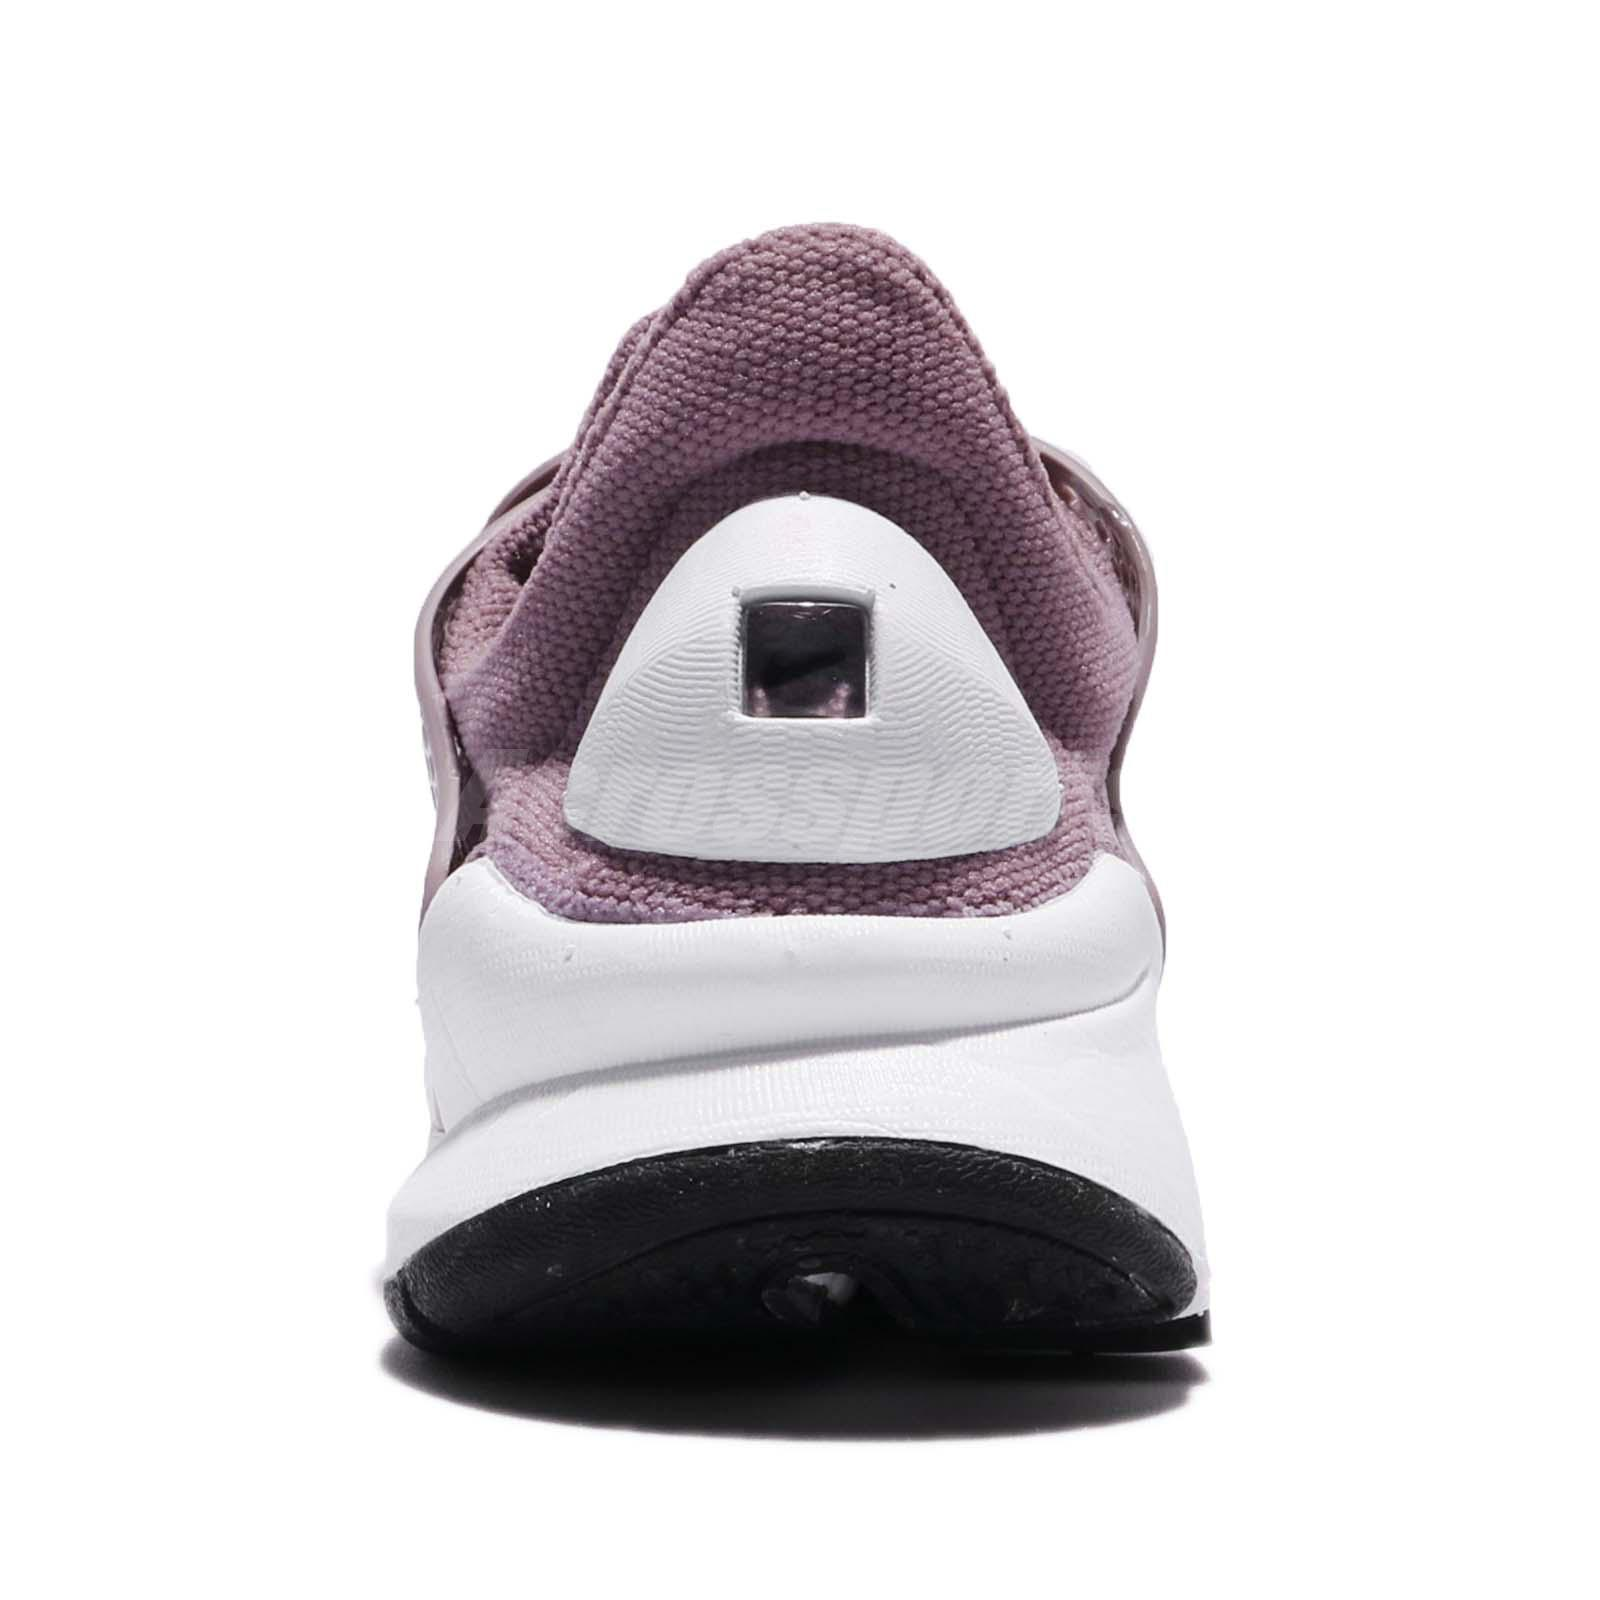 16a3a3d551df8d Wmns Nike Sock Dart Taupe Grey White Women Shoes Sneakers Slip-On ...